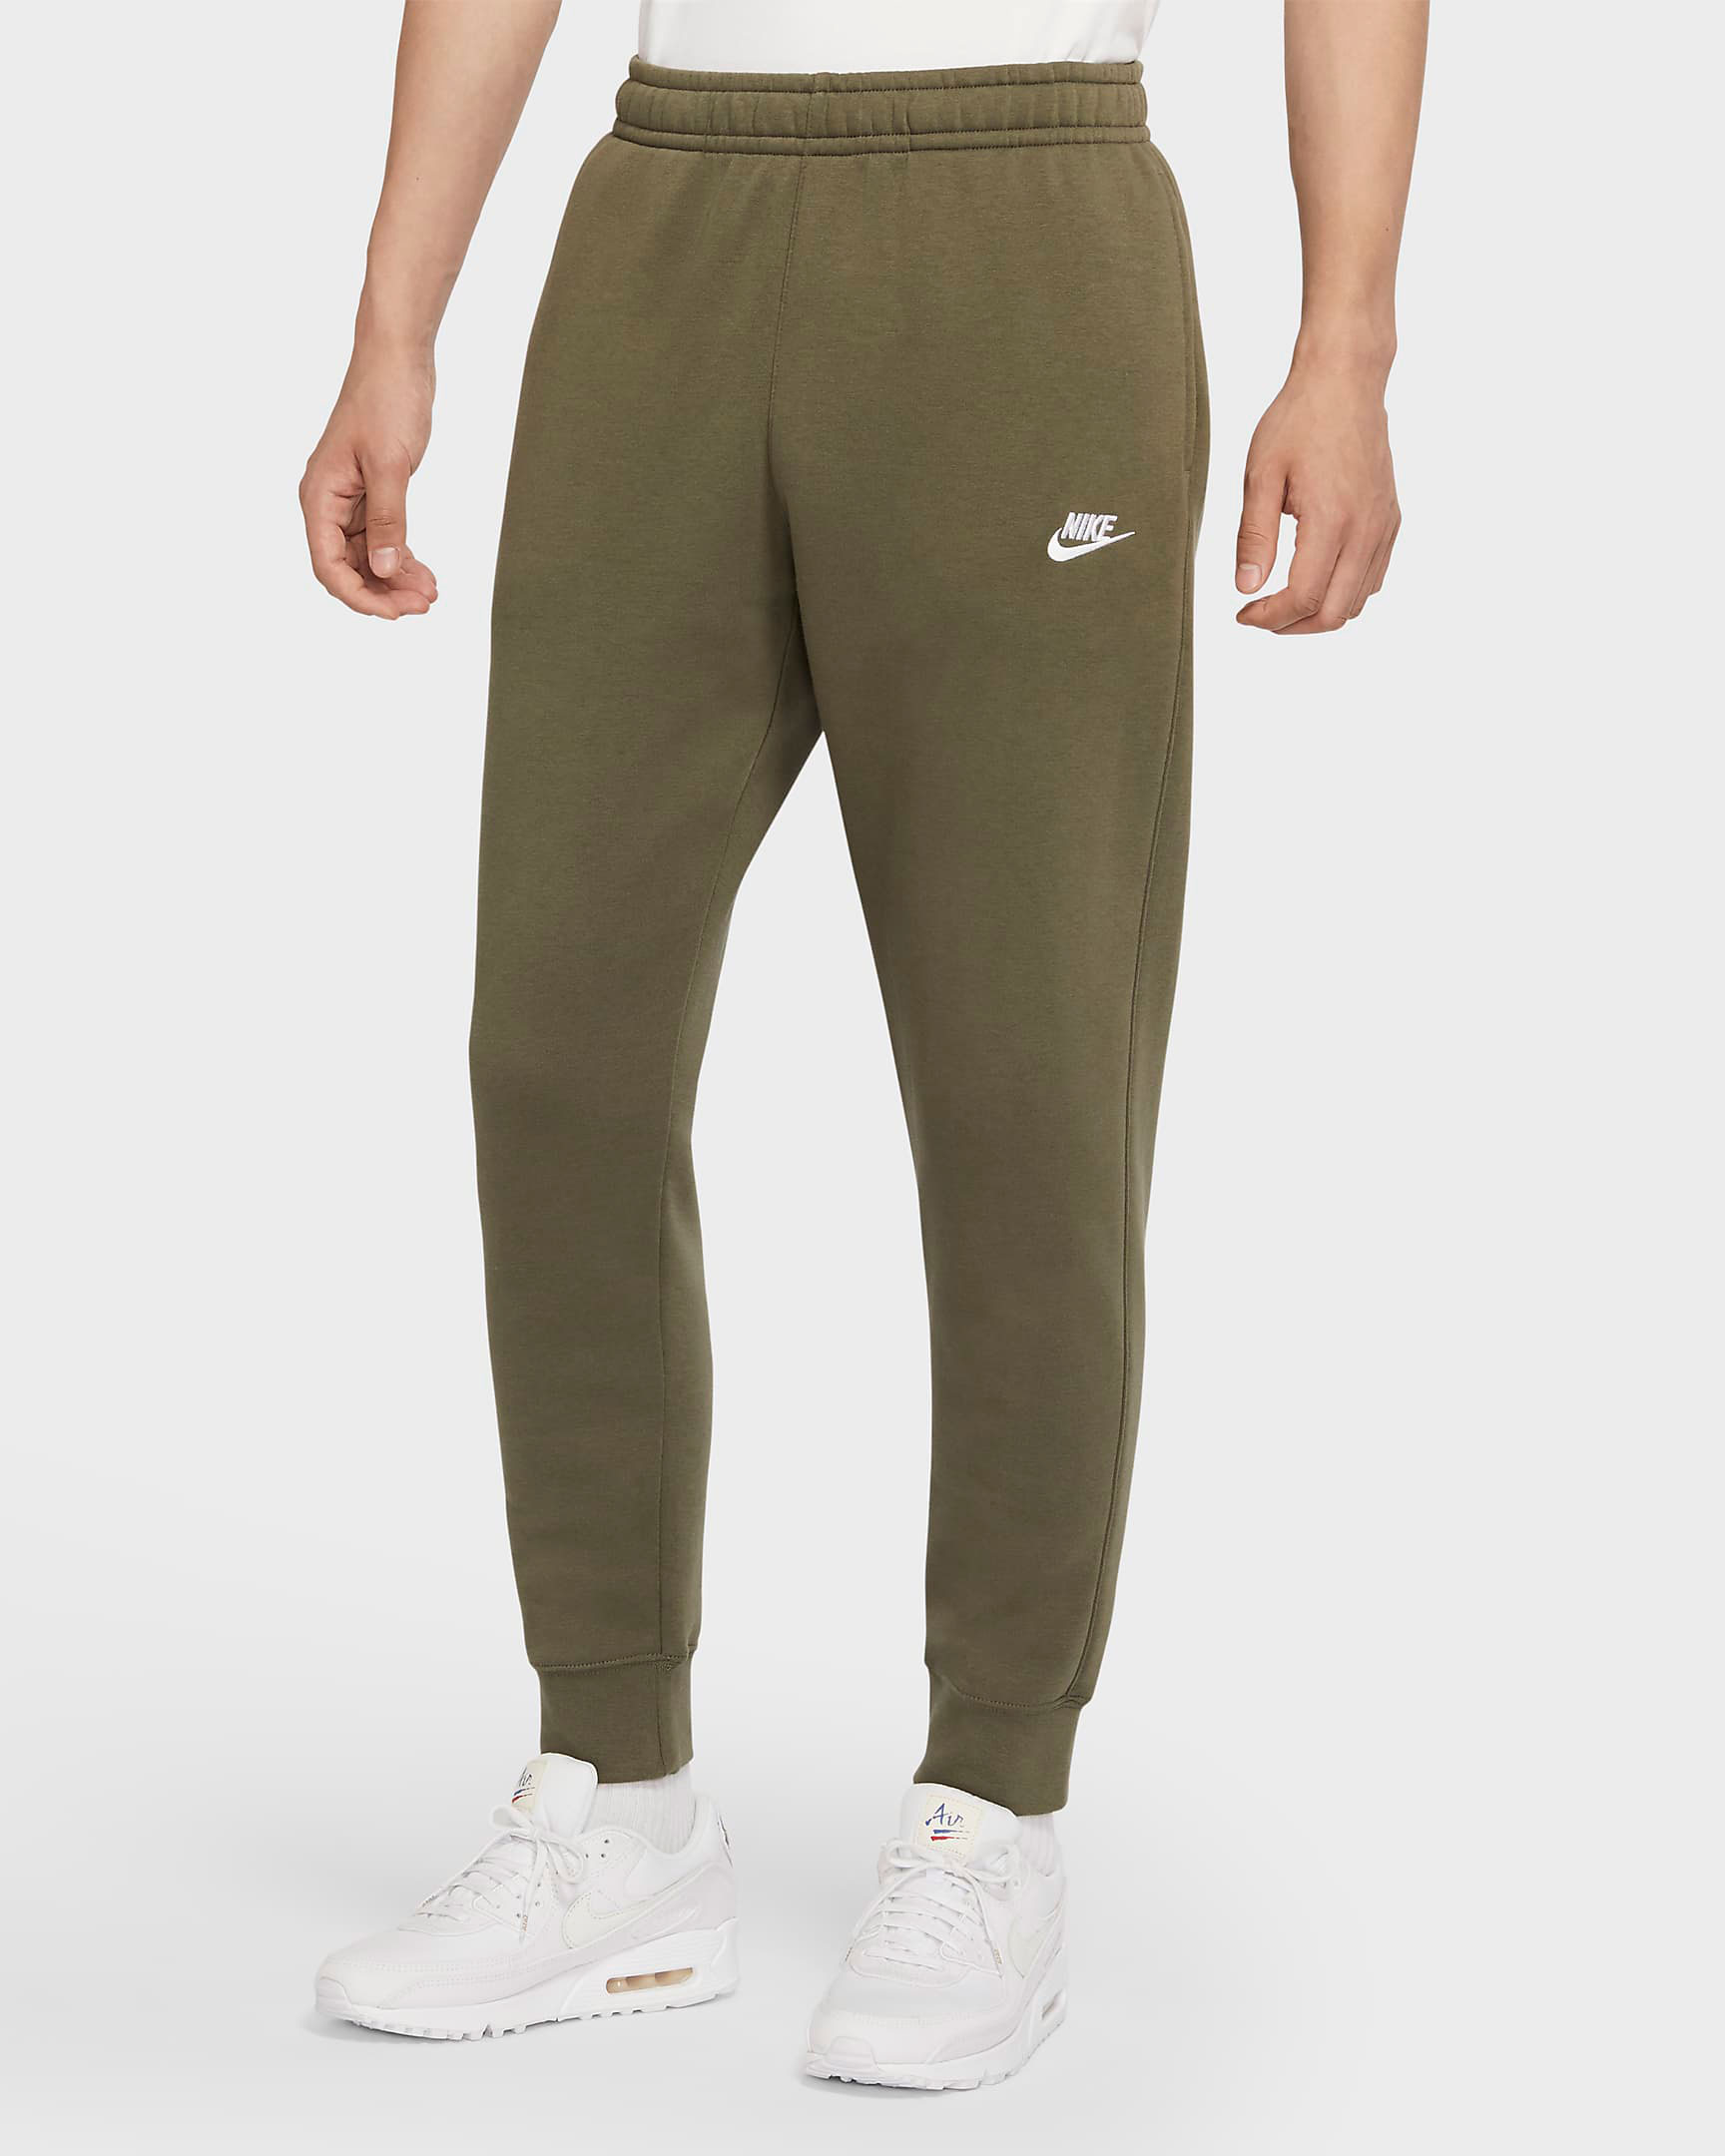 nike-club-fleece-jogger-pants-twilight-marsh-olive-green